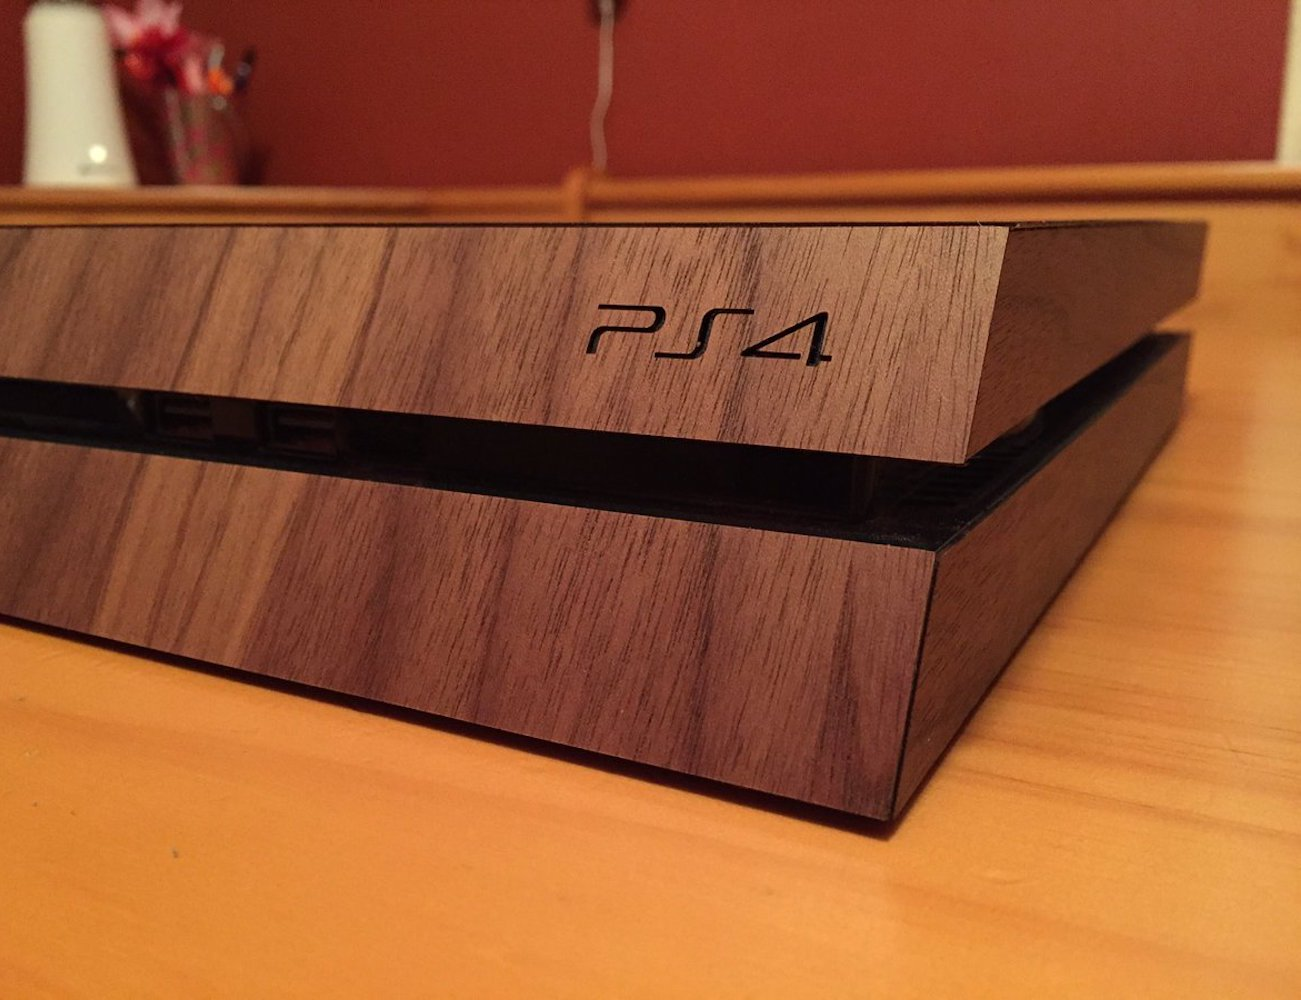 10 Must-have gaming accessories that will help you level up - Real Wood Cover 02